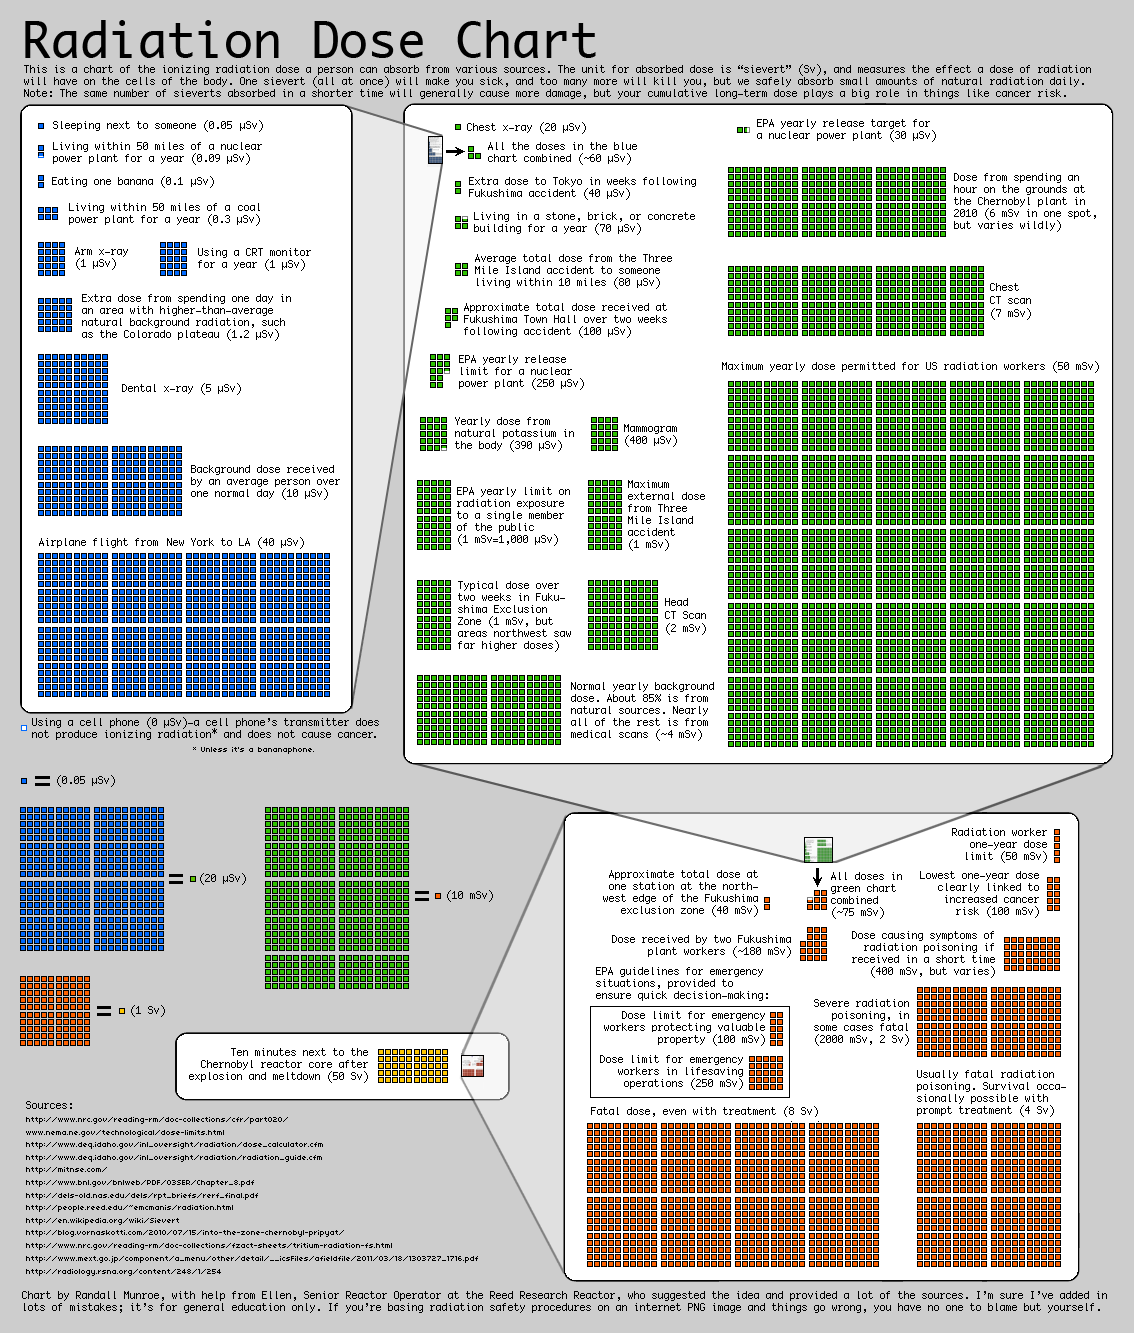 [Image: Radiation_Dose_Chart_by_Xkcd.png]